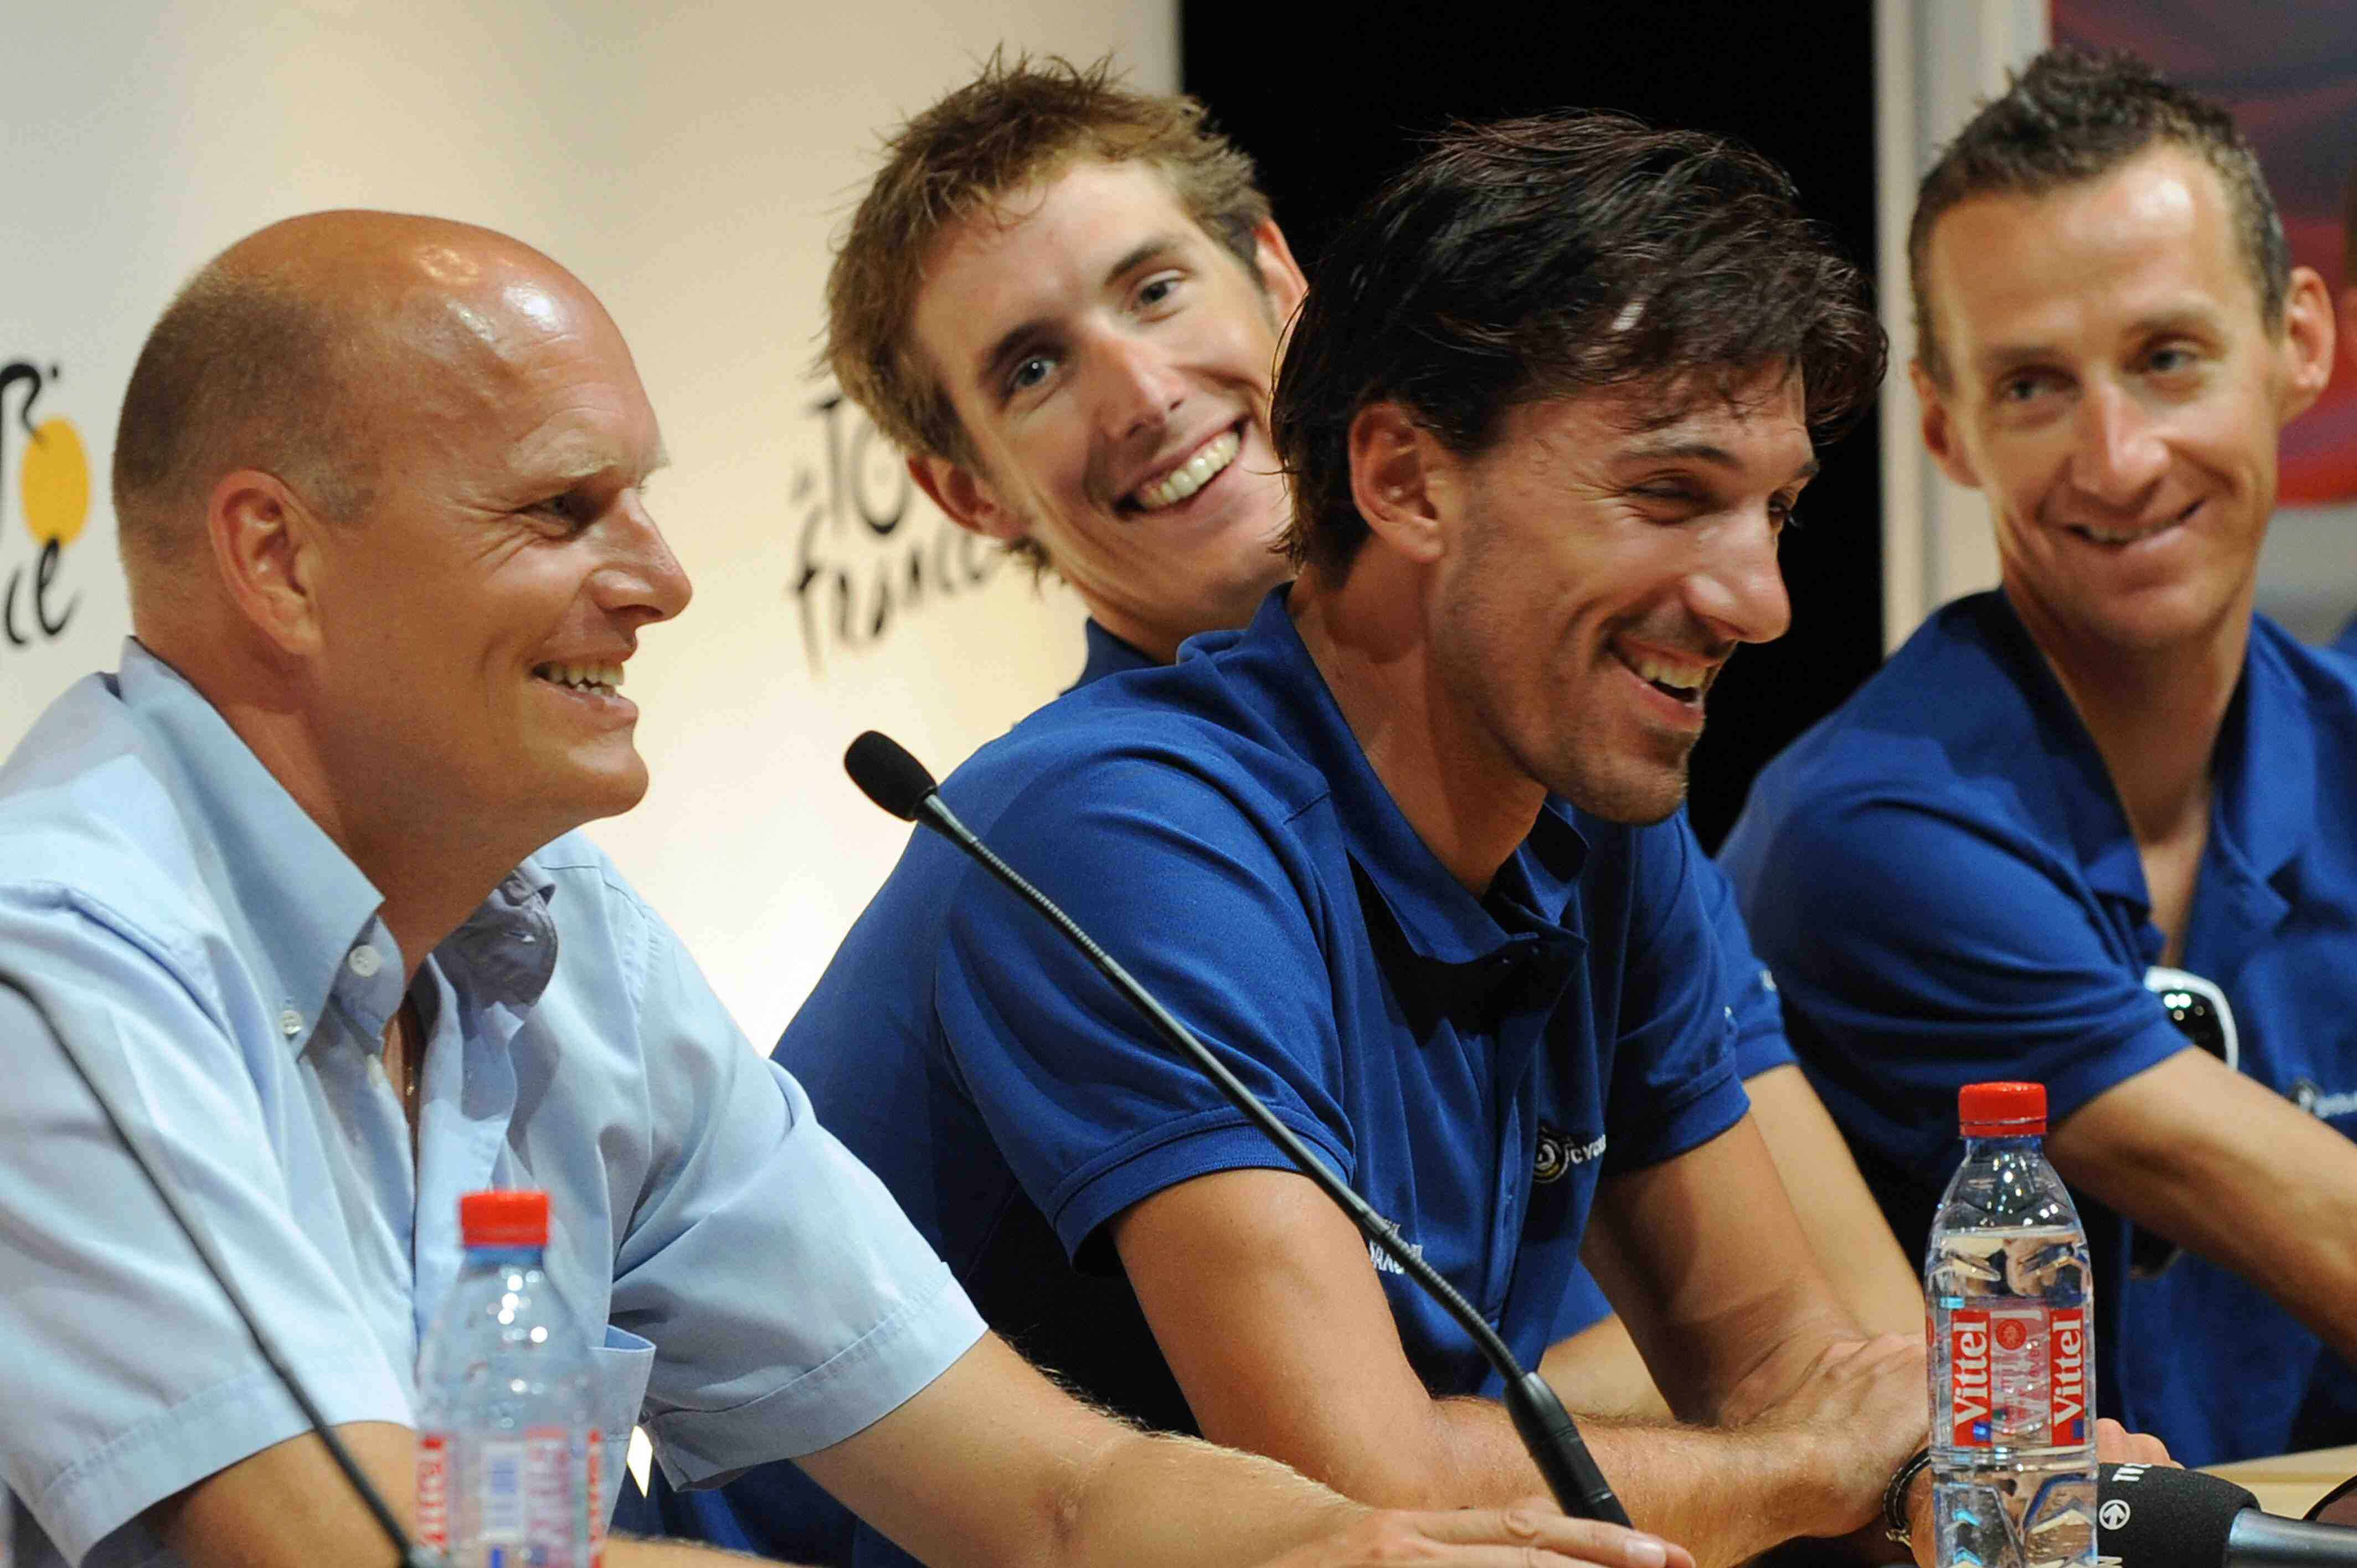 Why are the Saxo Bank men smiling? Was it something Friebe or Bacon said in Monaco? Stay tuned...